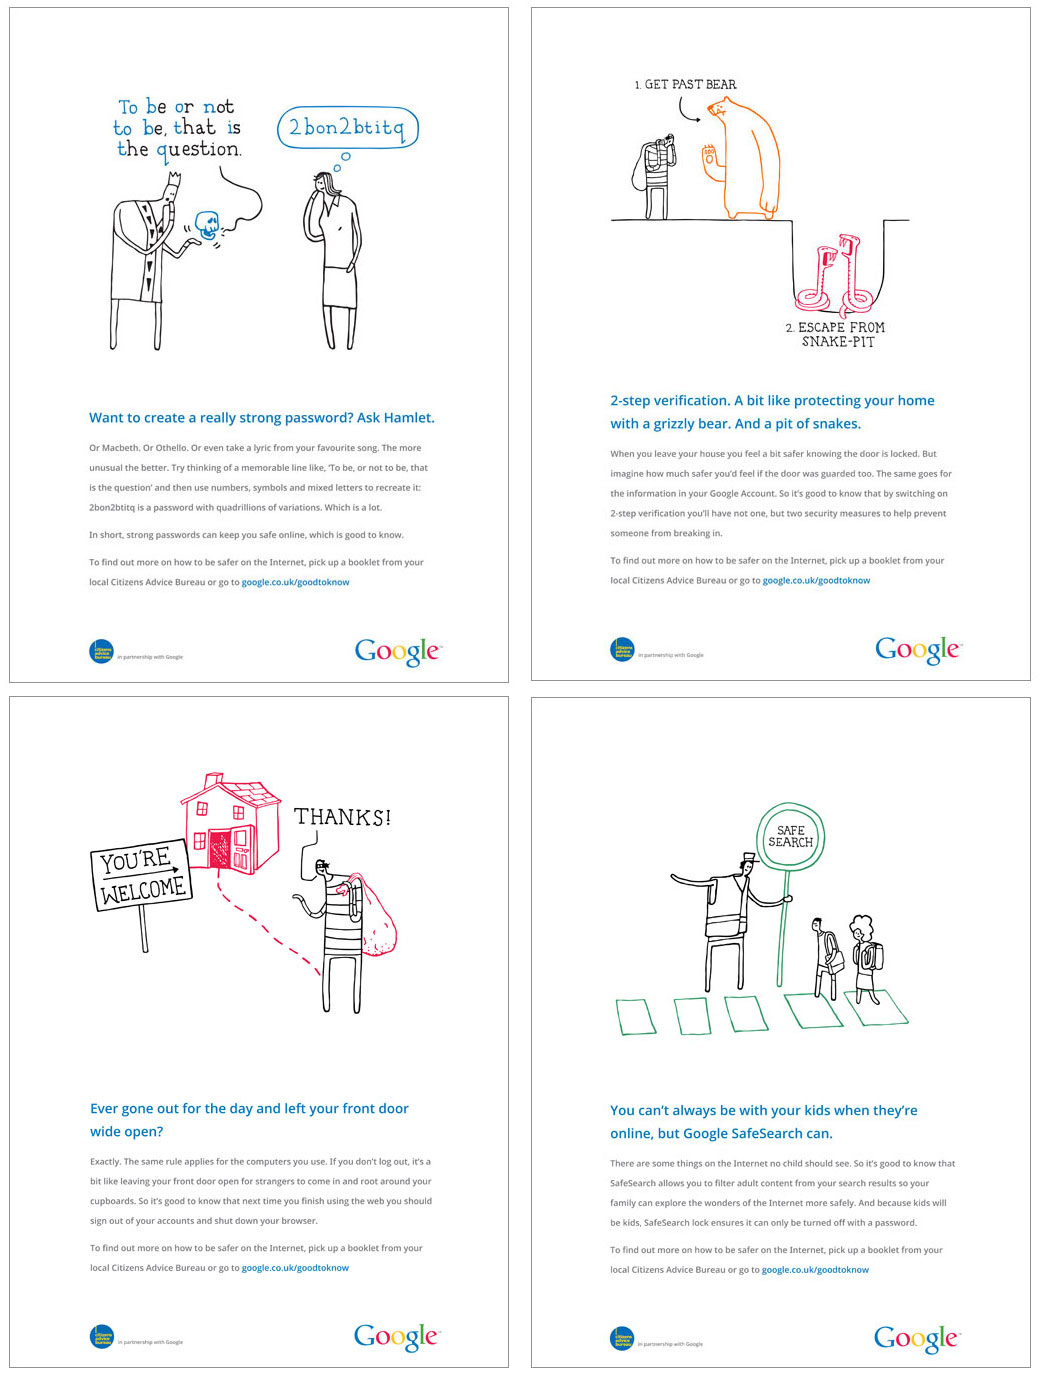 Google and Citizens Advice Bureau launch internet safety campaign